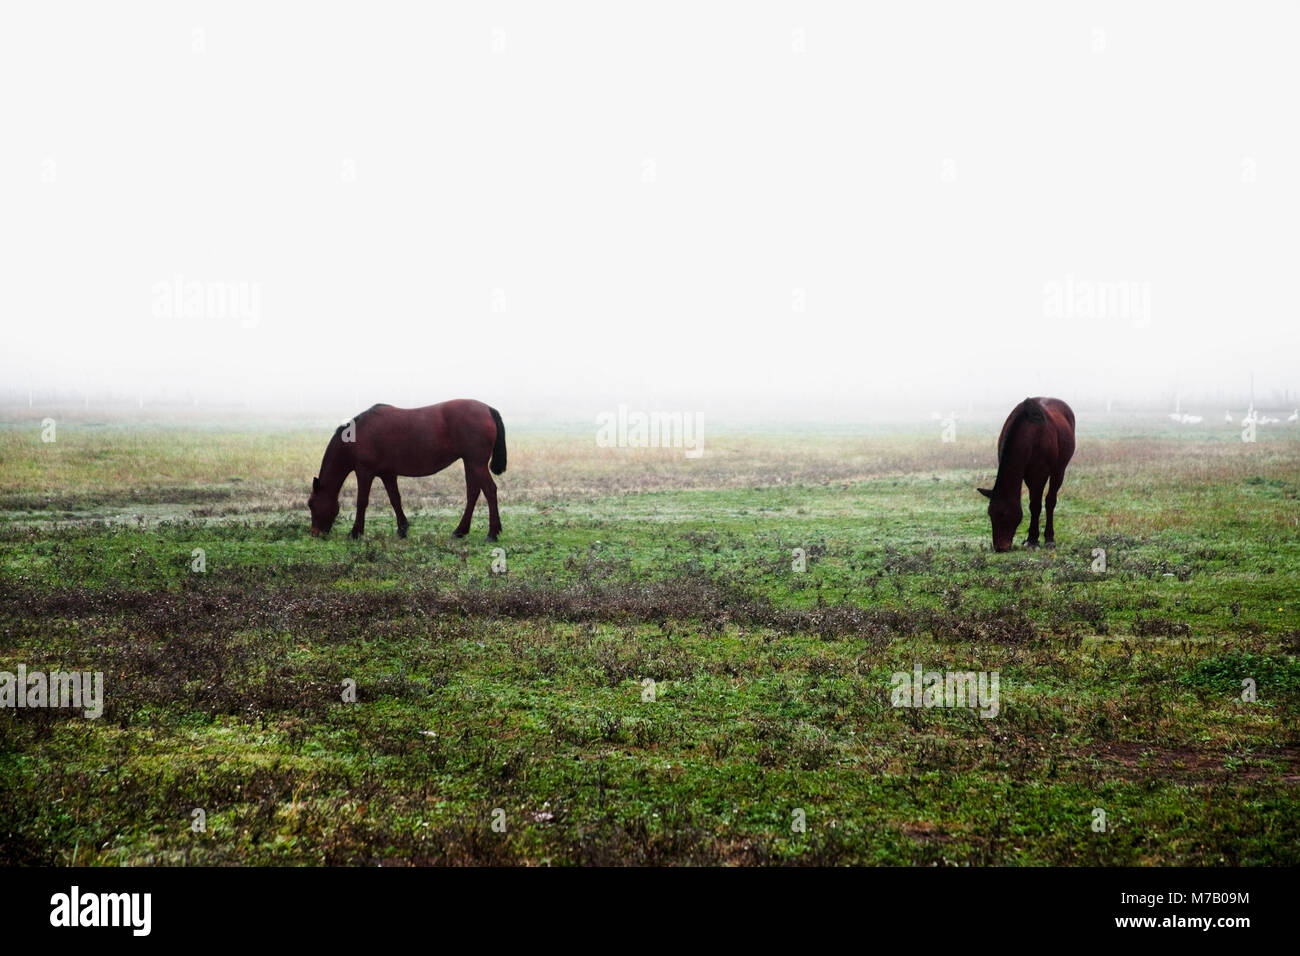 Horses grazing in a pasture - Stock Image